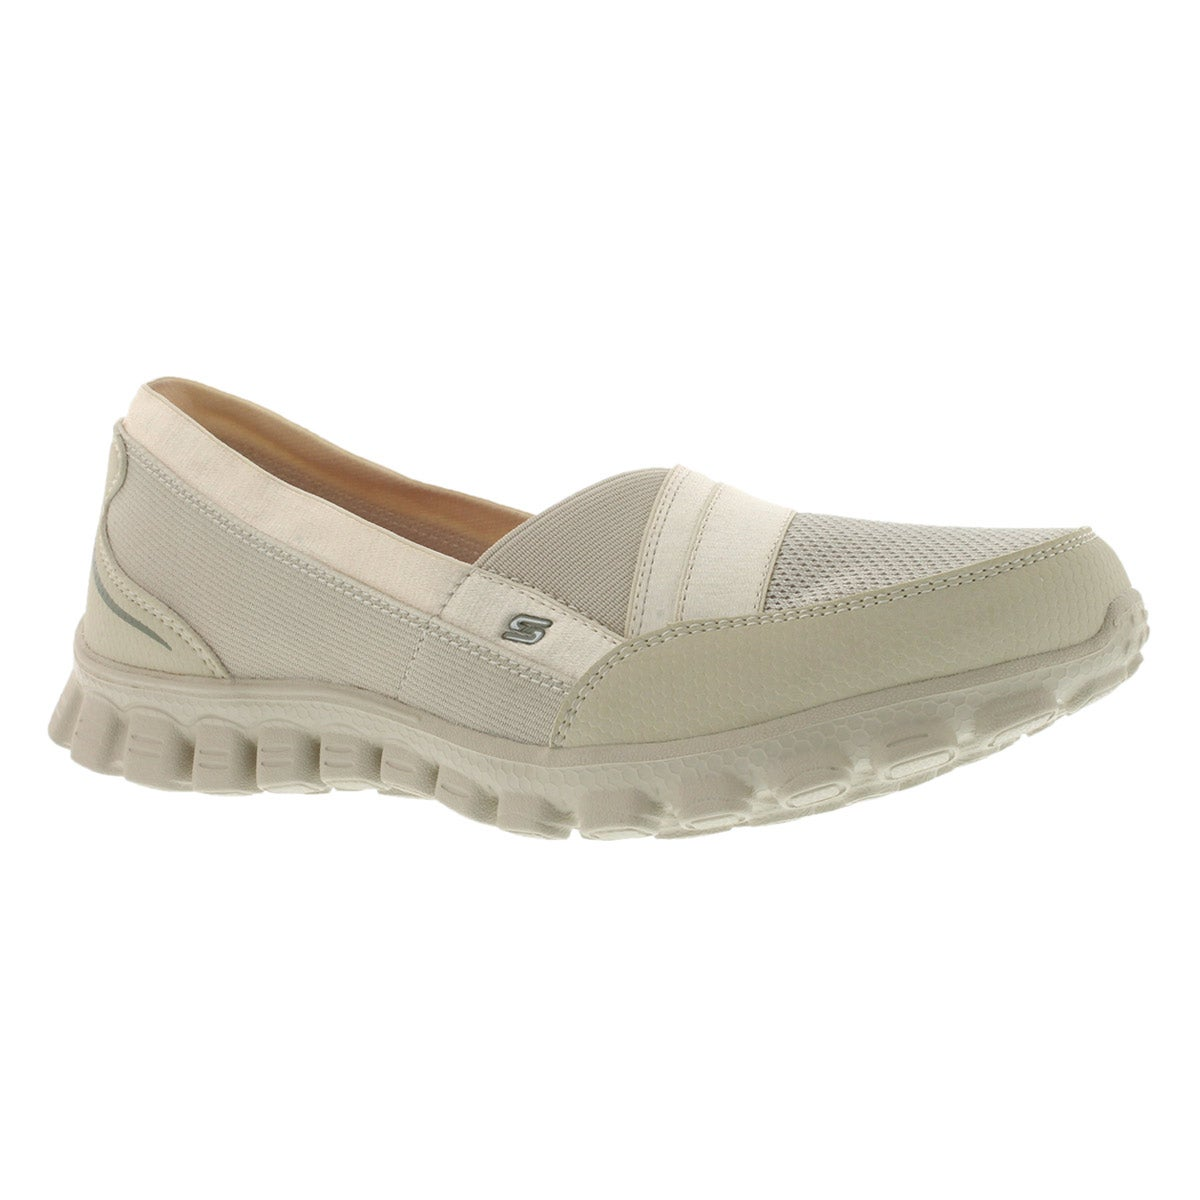 Women's QUIPSTER natural slip on walking shoes